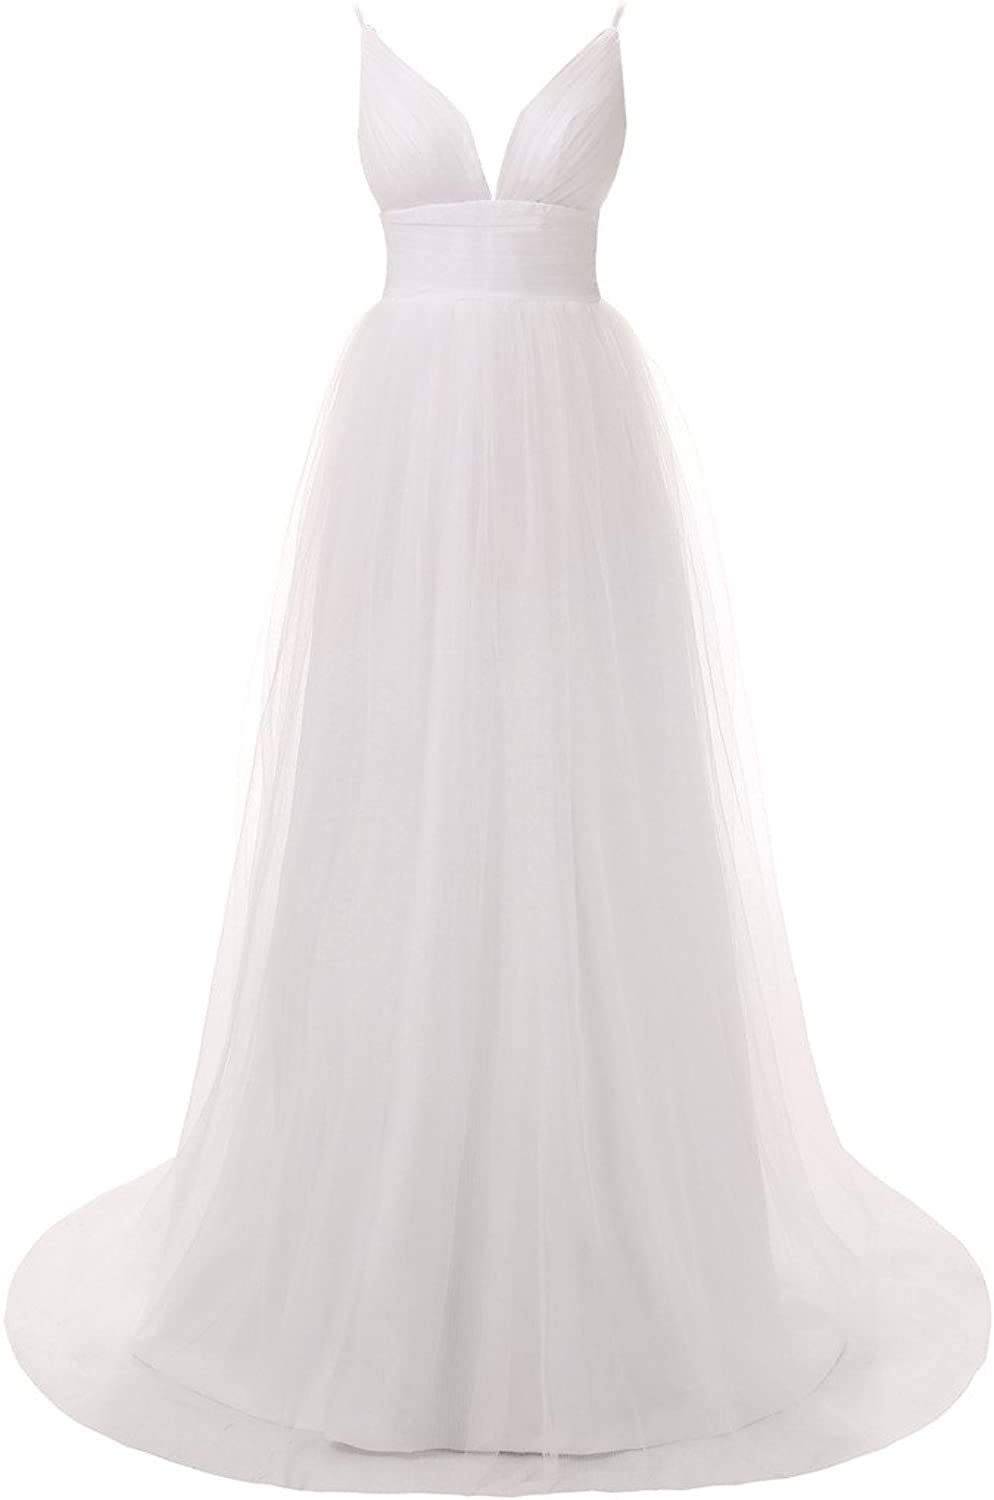 Cdress Straps Deep VNeck Long Tulle Wedding Dresses Backless Beach Bridal Gowns